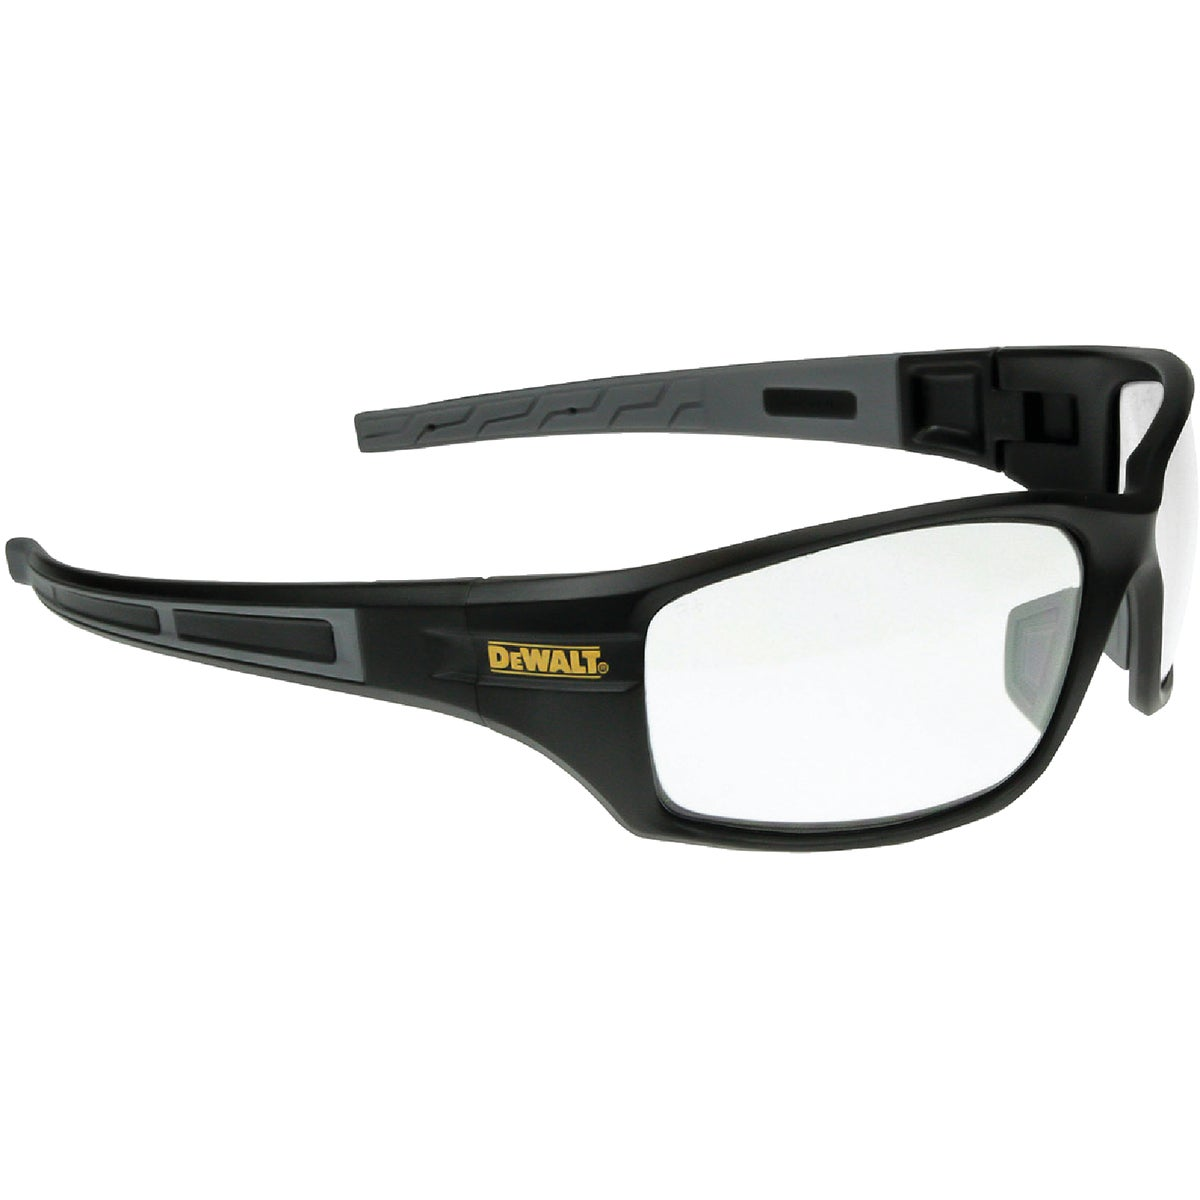 CLEAR SAFETY GLASSES - DPG56-1C by Radians